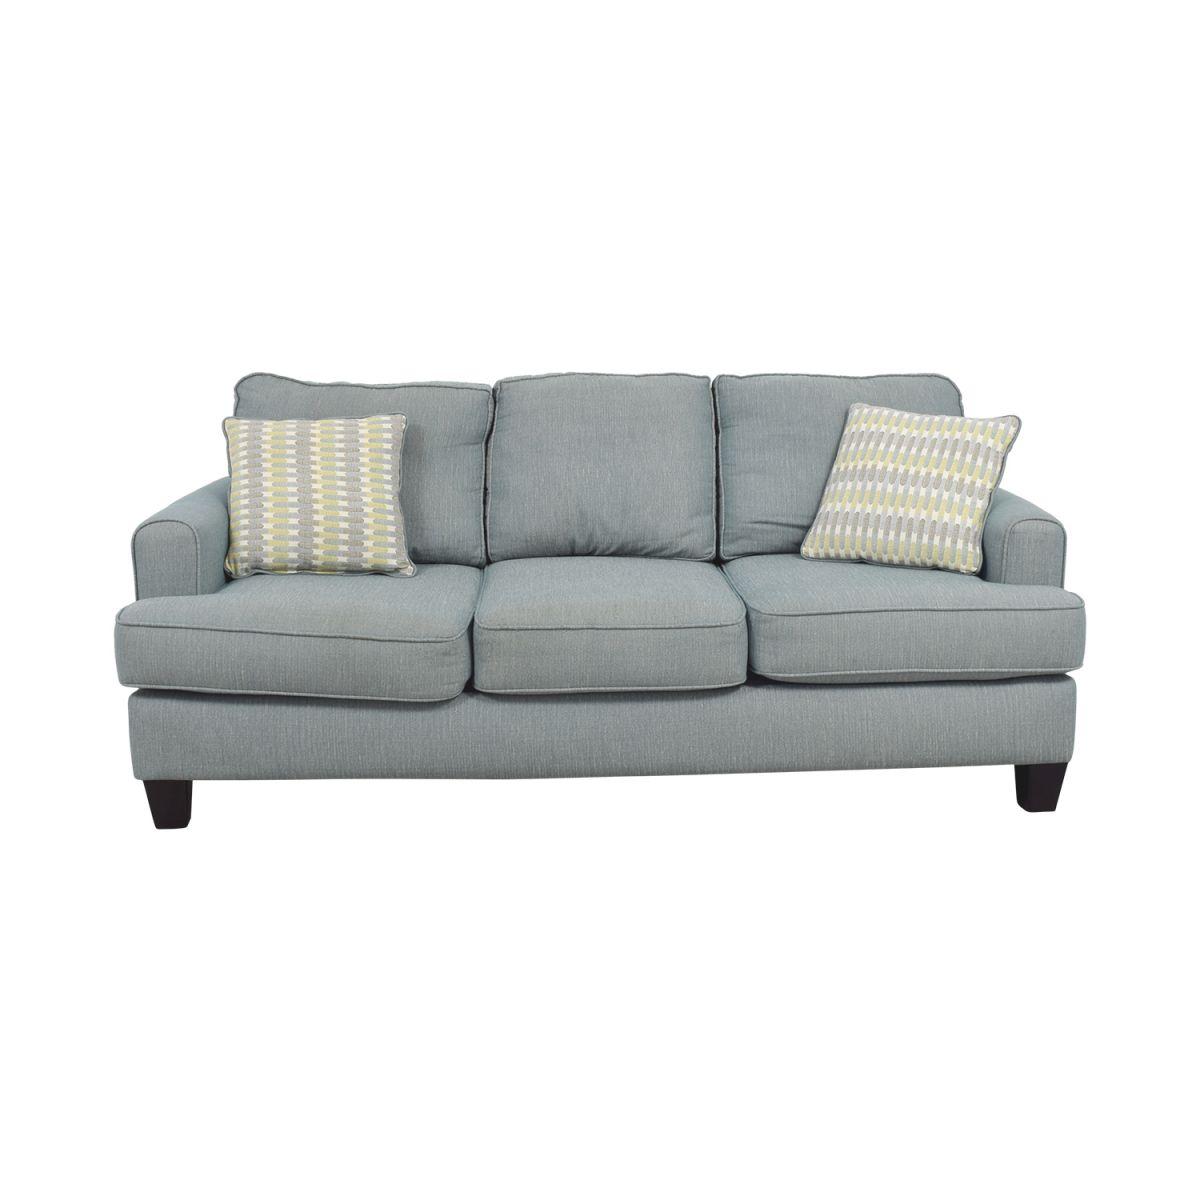 Raymour & Flanigan Sofa - Socpar with regard to Raymour And Flanigan Sleeper Sofa